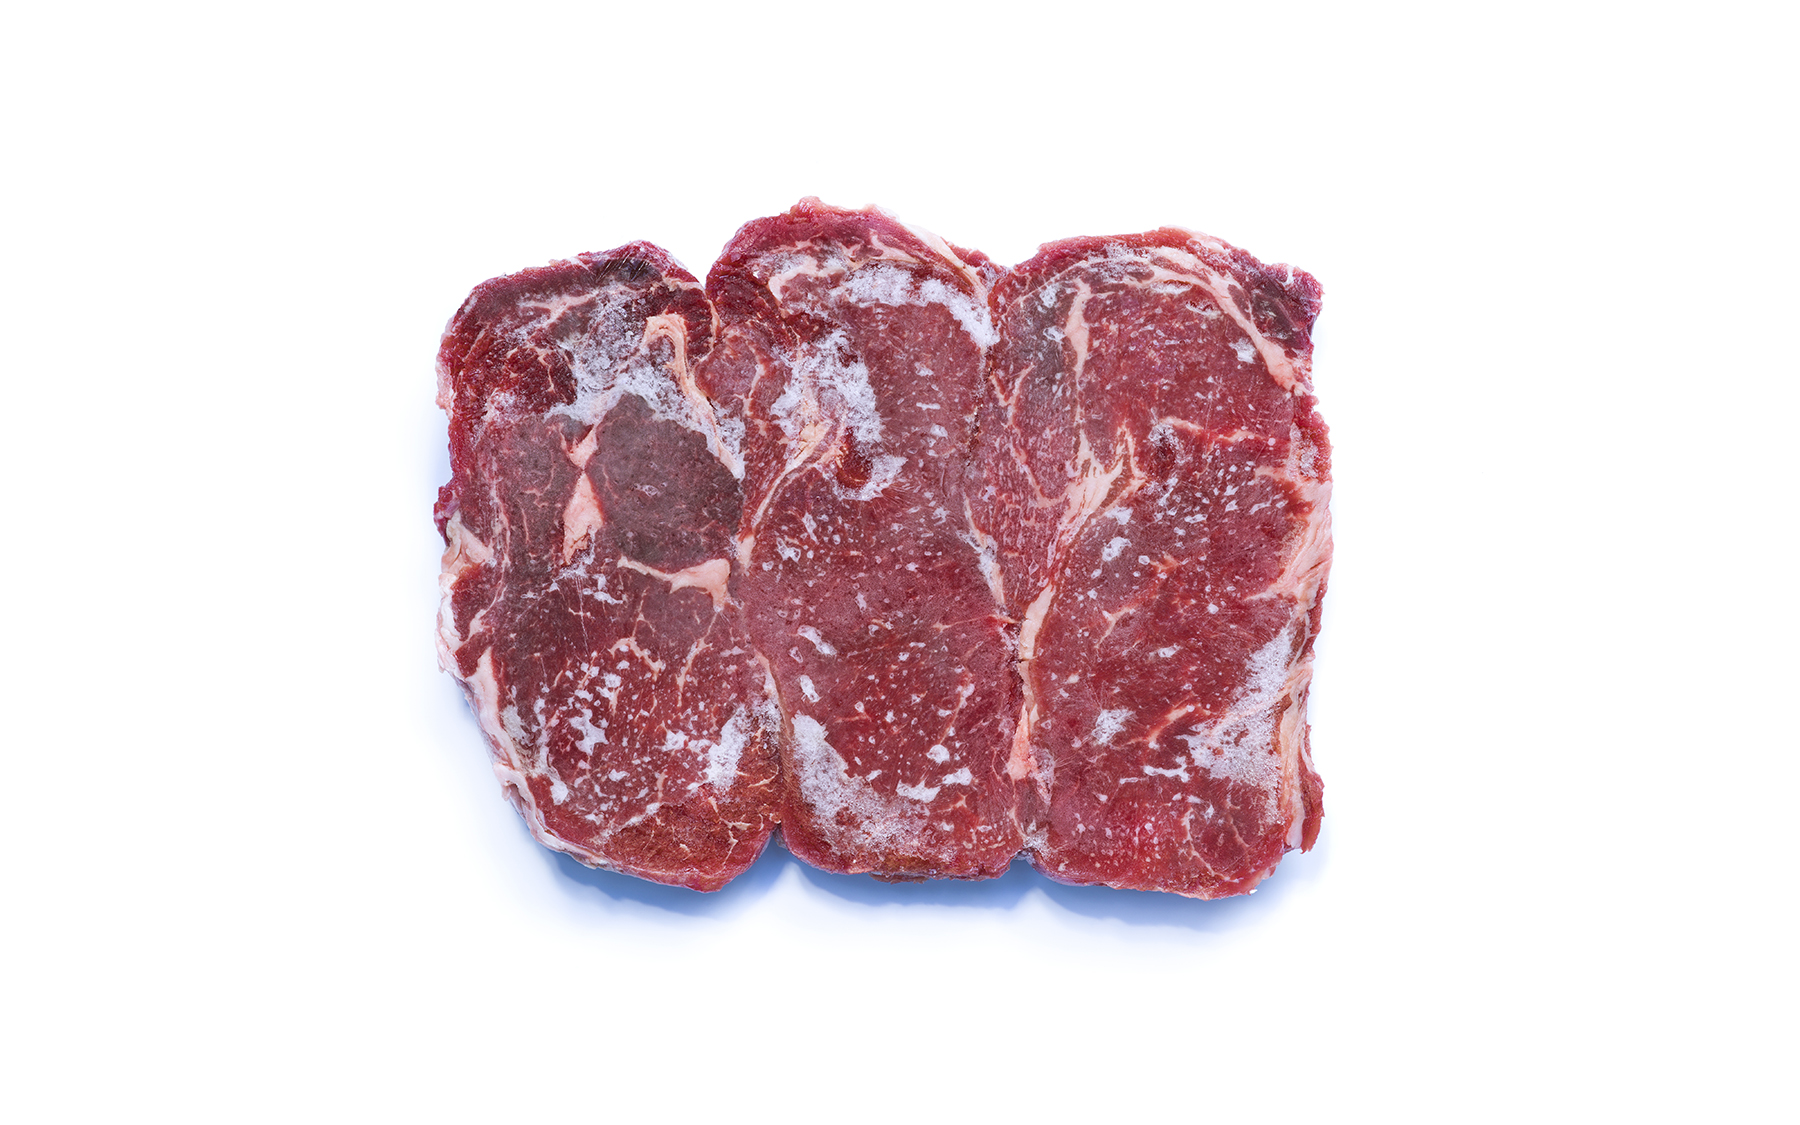 How quickly to thaw meat